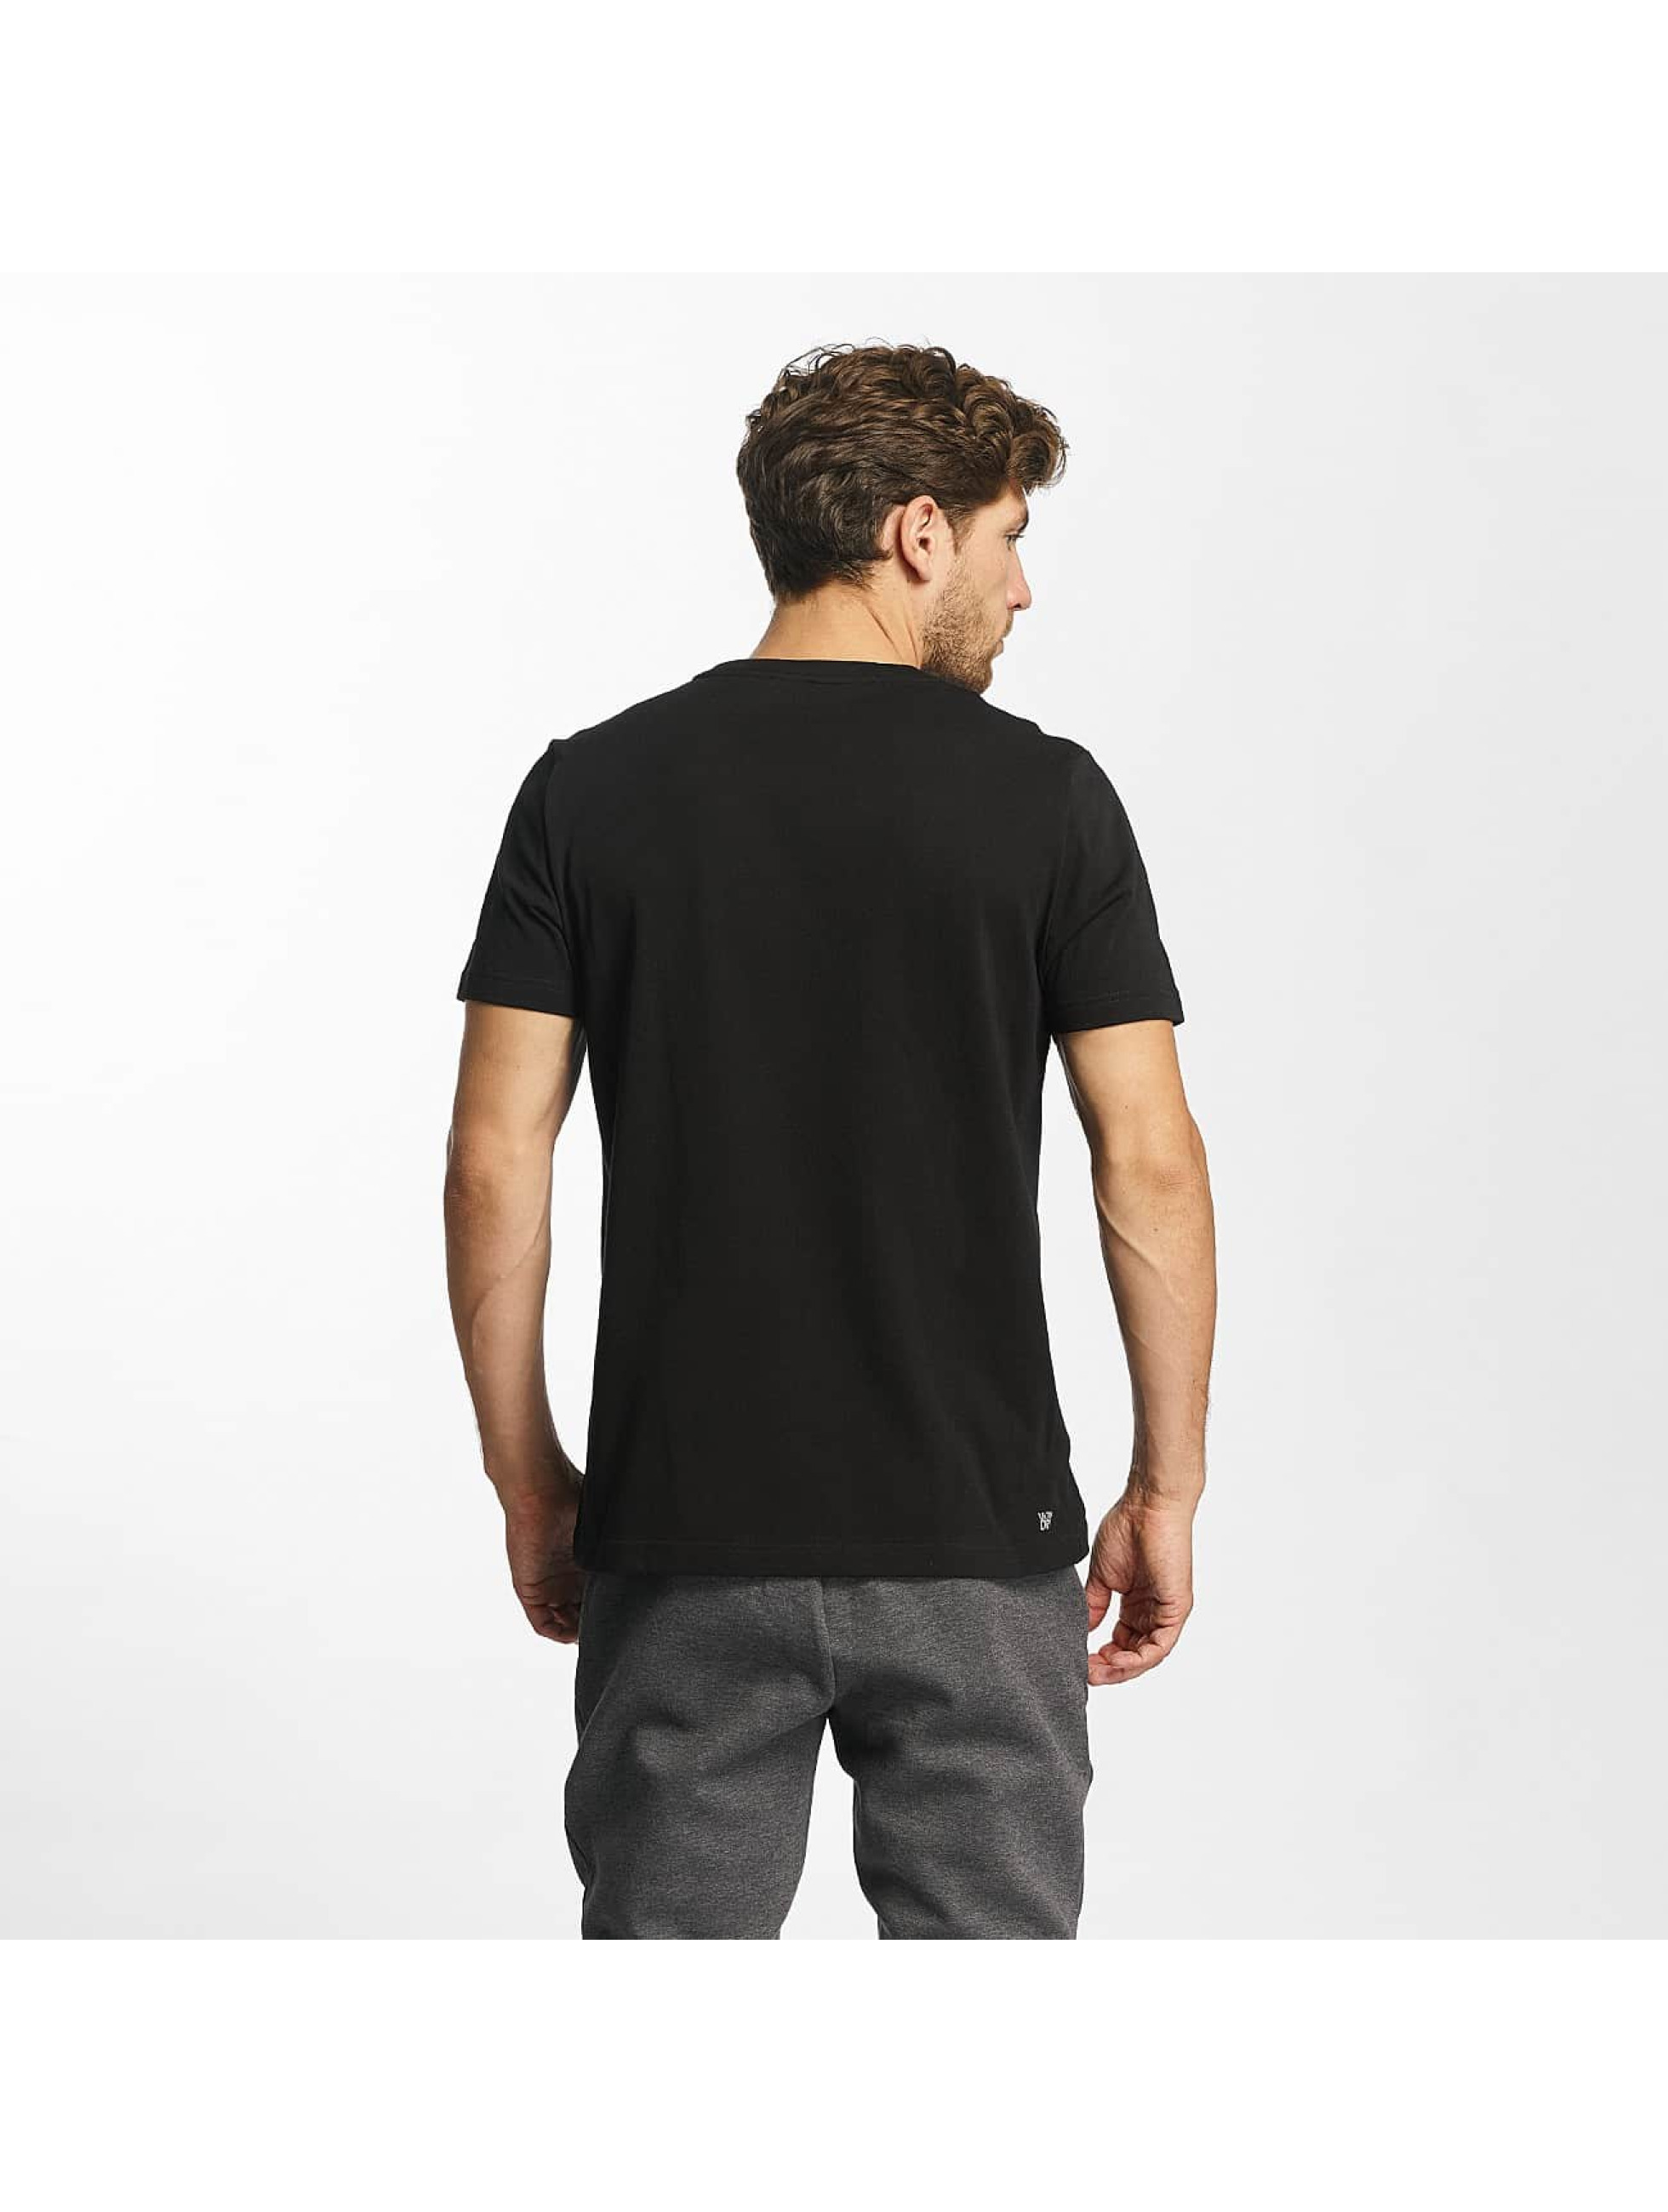 Lacoste T-Shirt TH8134 black